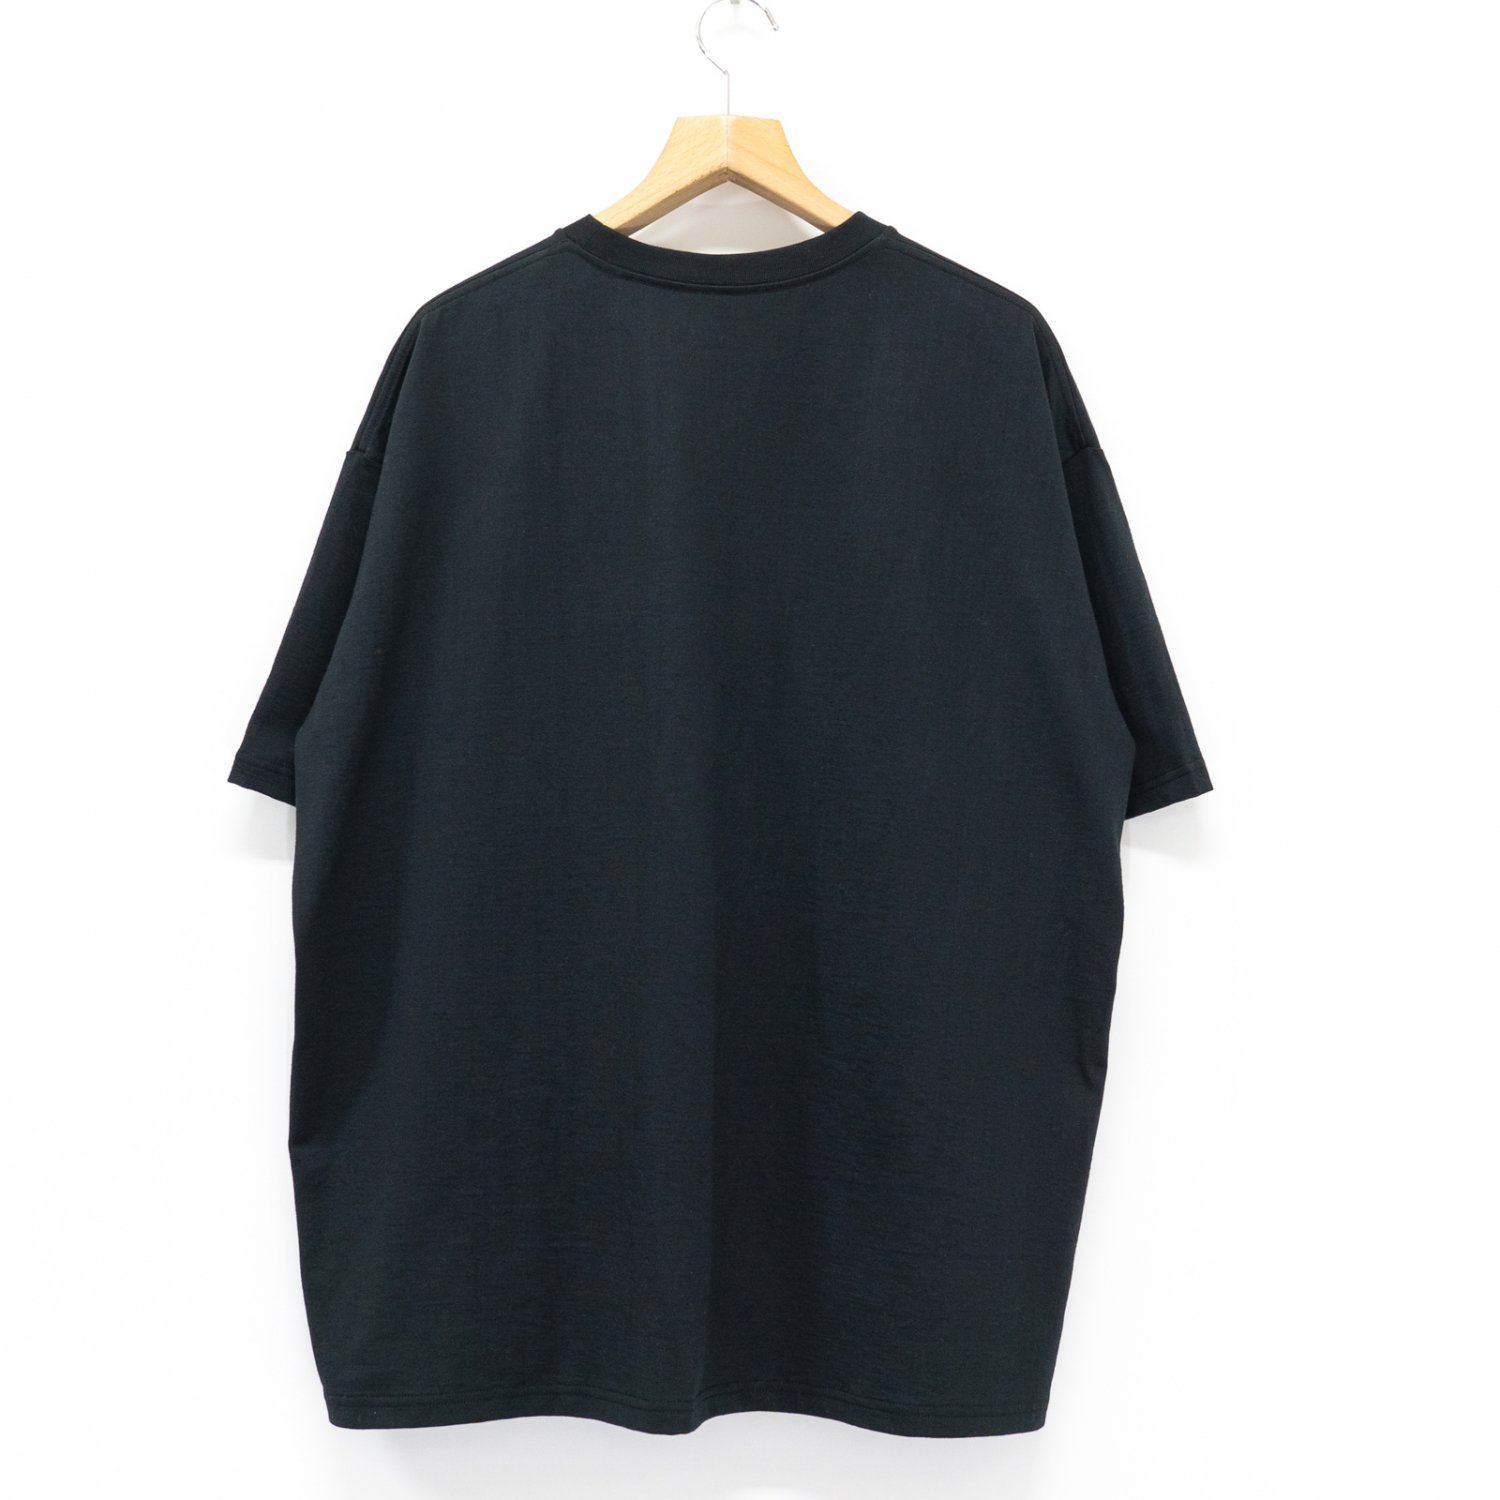 Graphpaper * S/S Oversized Tee * Black